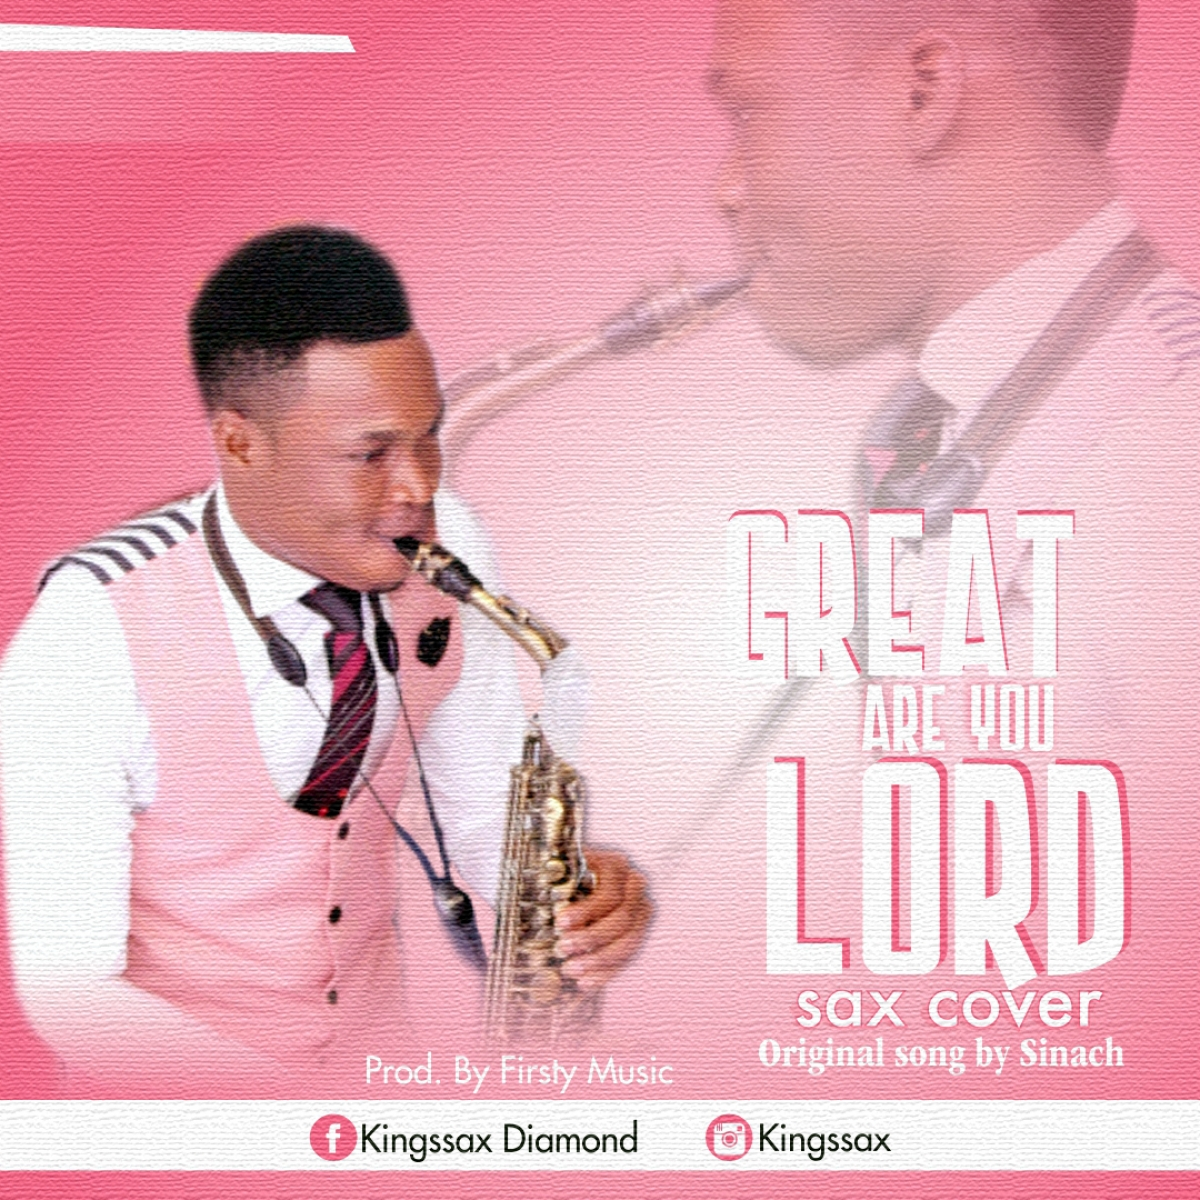 Kingssax - Great Are You Lord (Sax Cover)